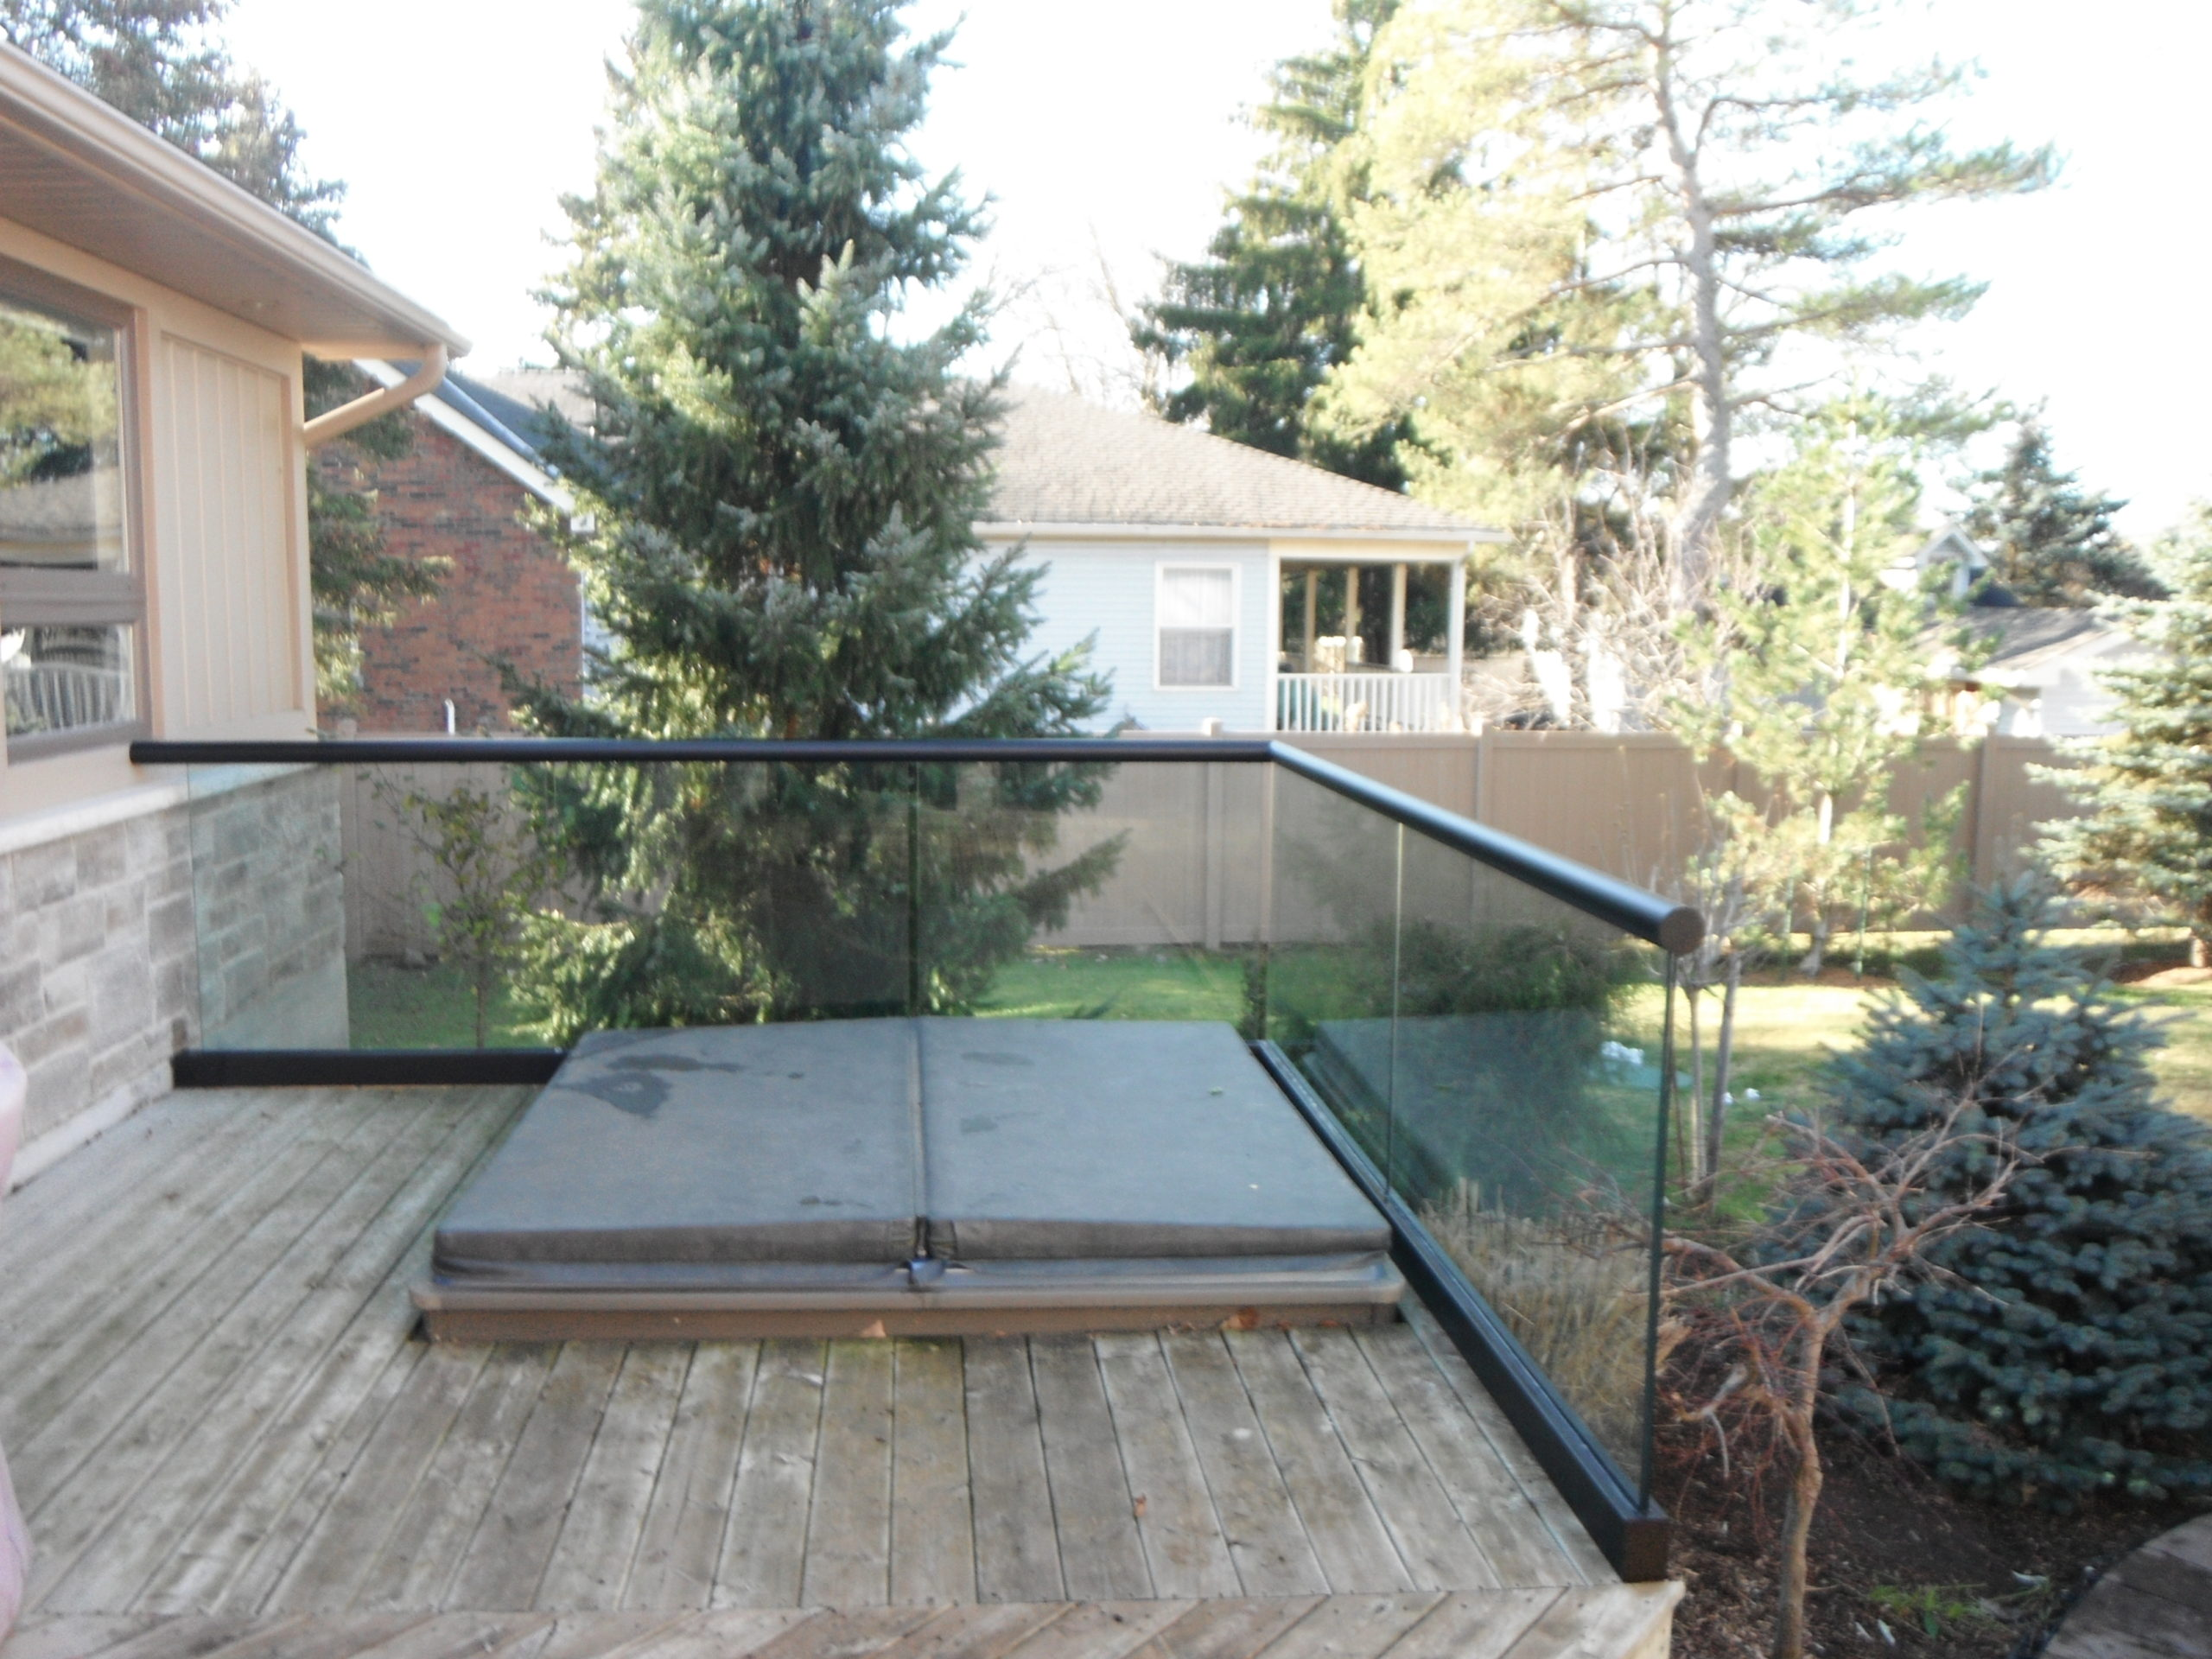 GC Residential Railing Exterior 2015 11 12 MaryDiSalvo 2 scaled